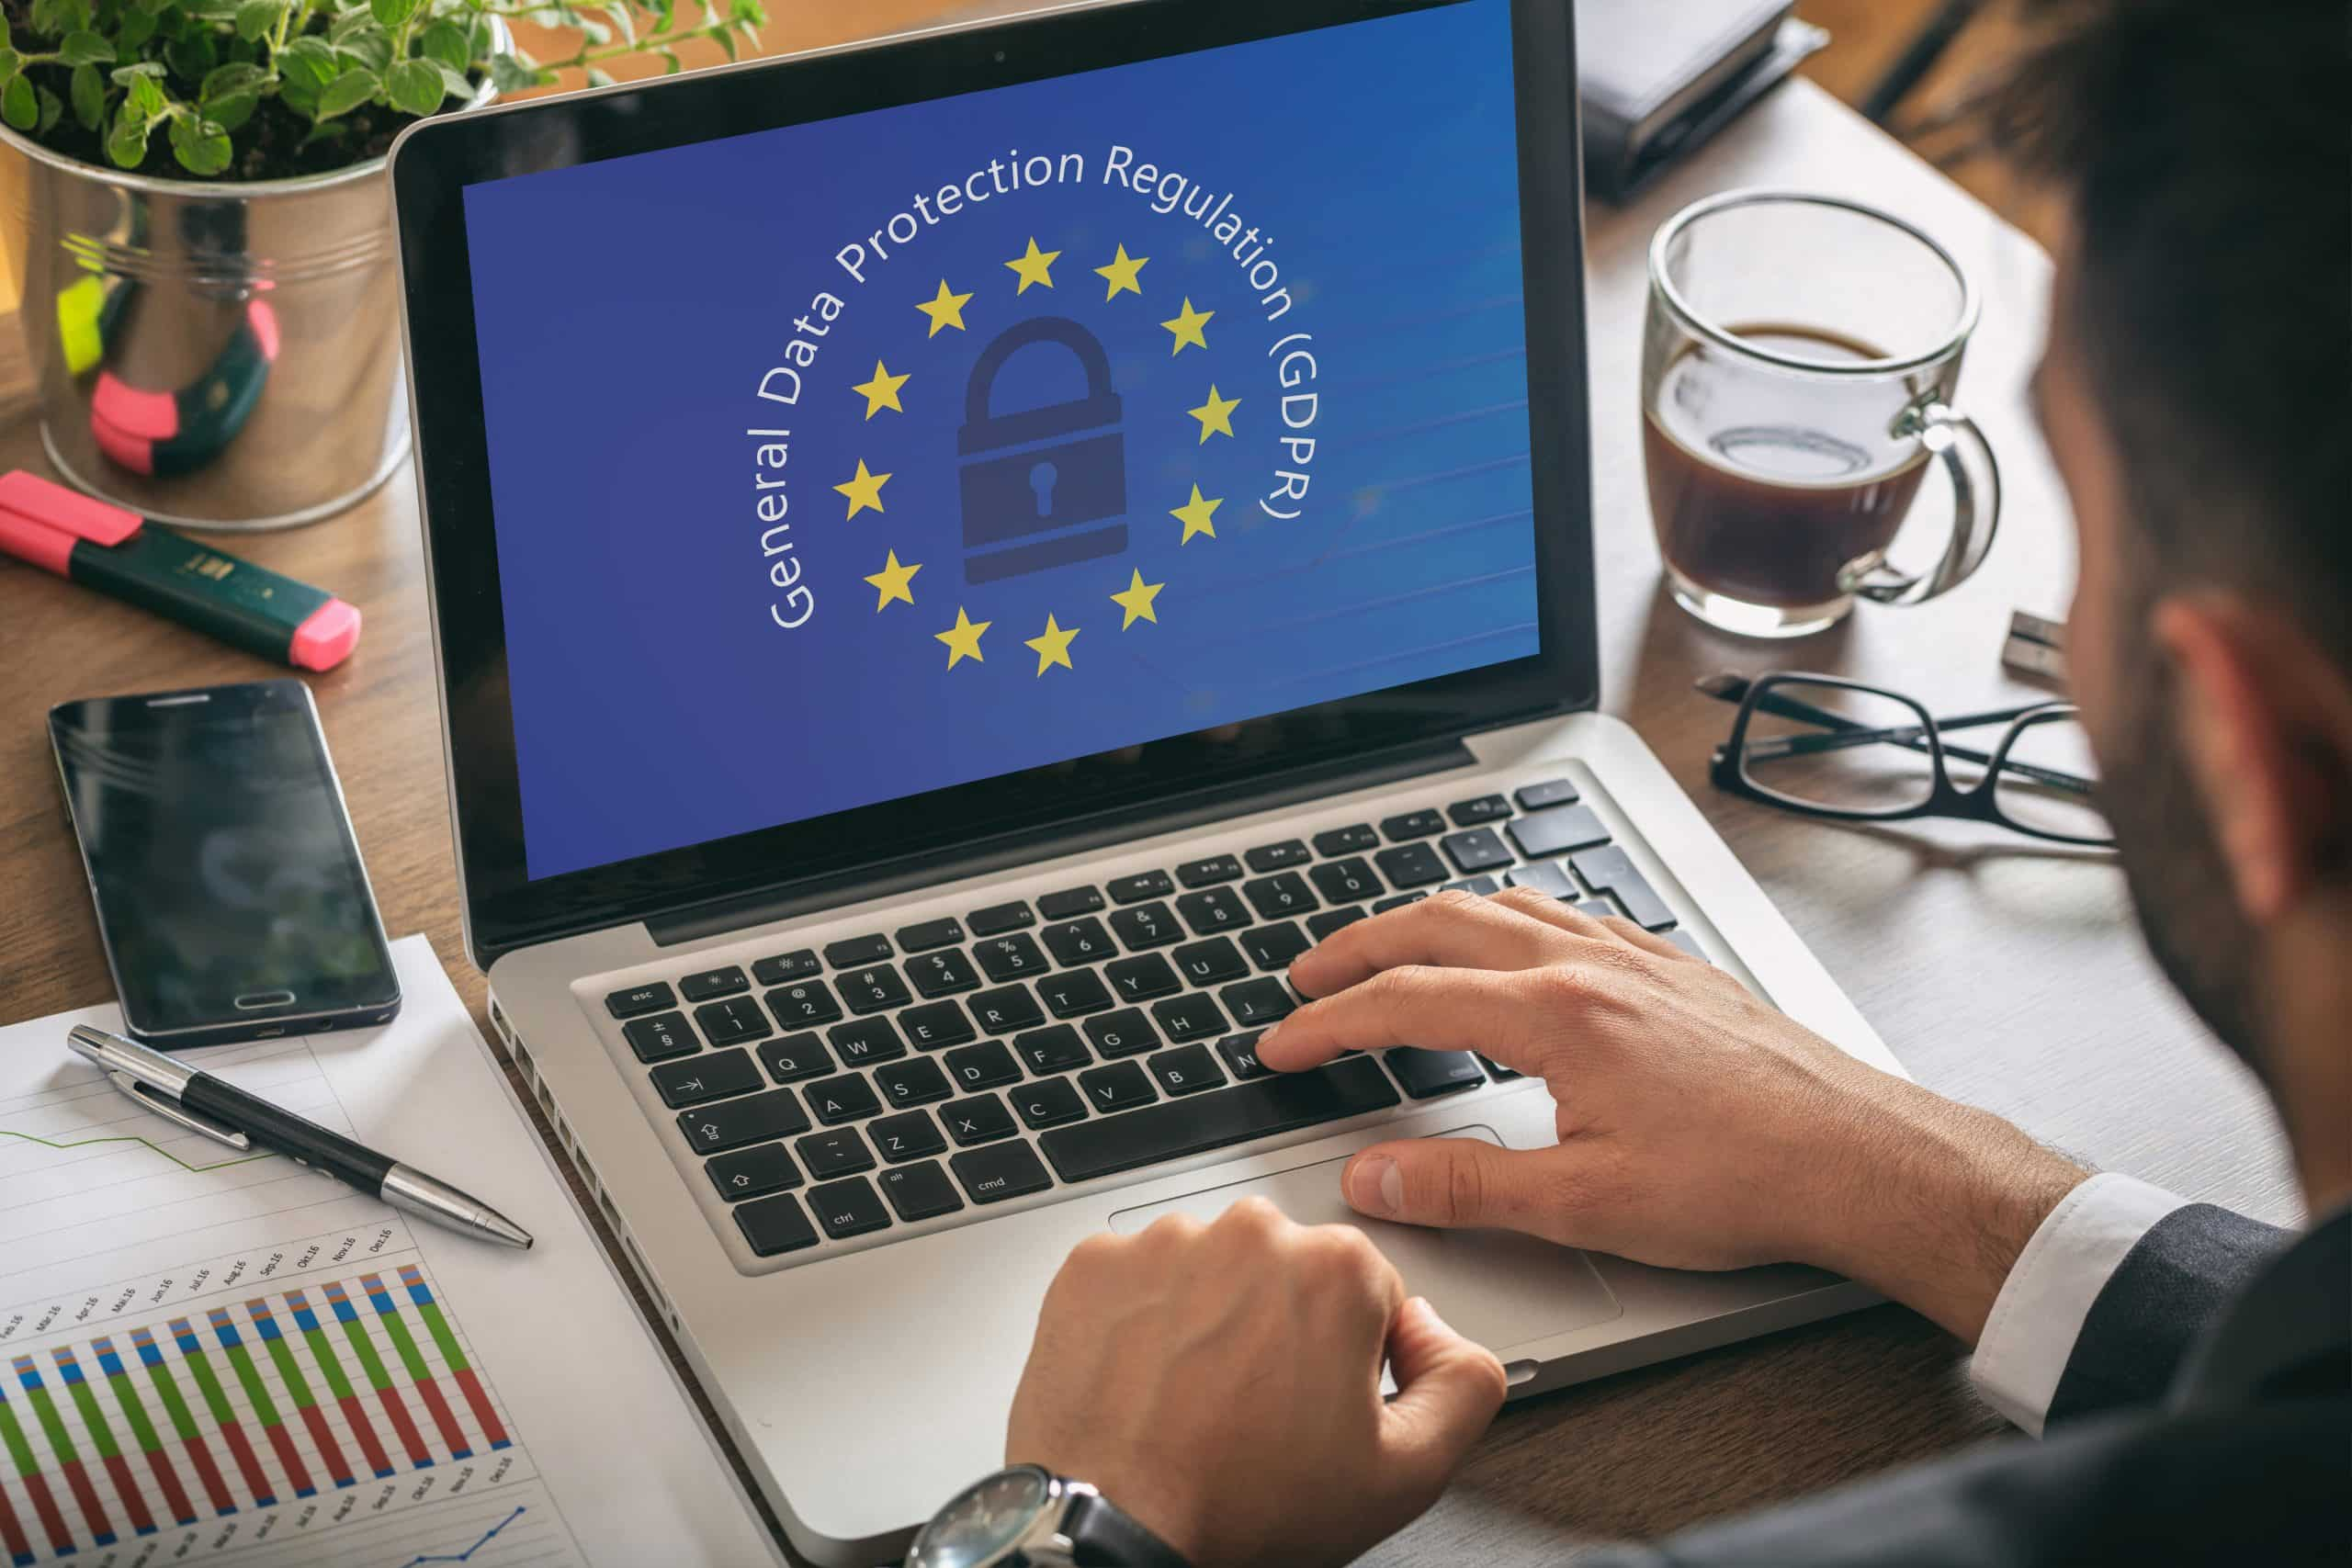 EU GDPR. Man working with a computer, General Data Protection Regulation and European Union flag on the screen